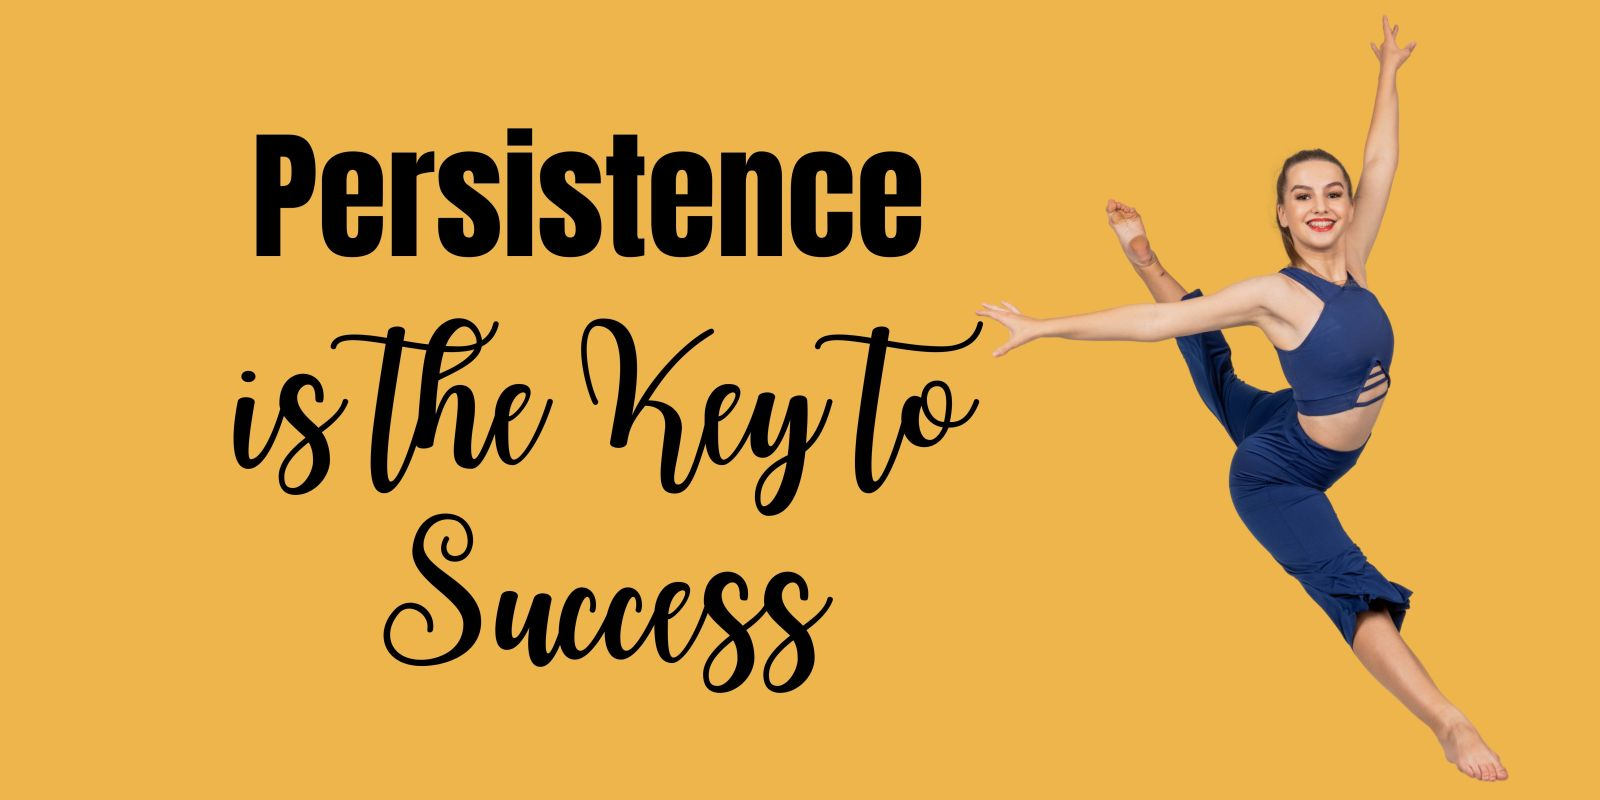 Persistence - The Key to Success